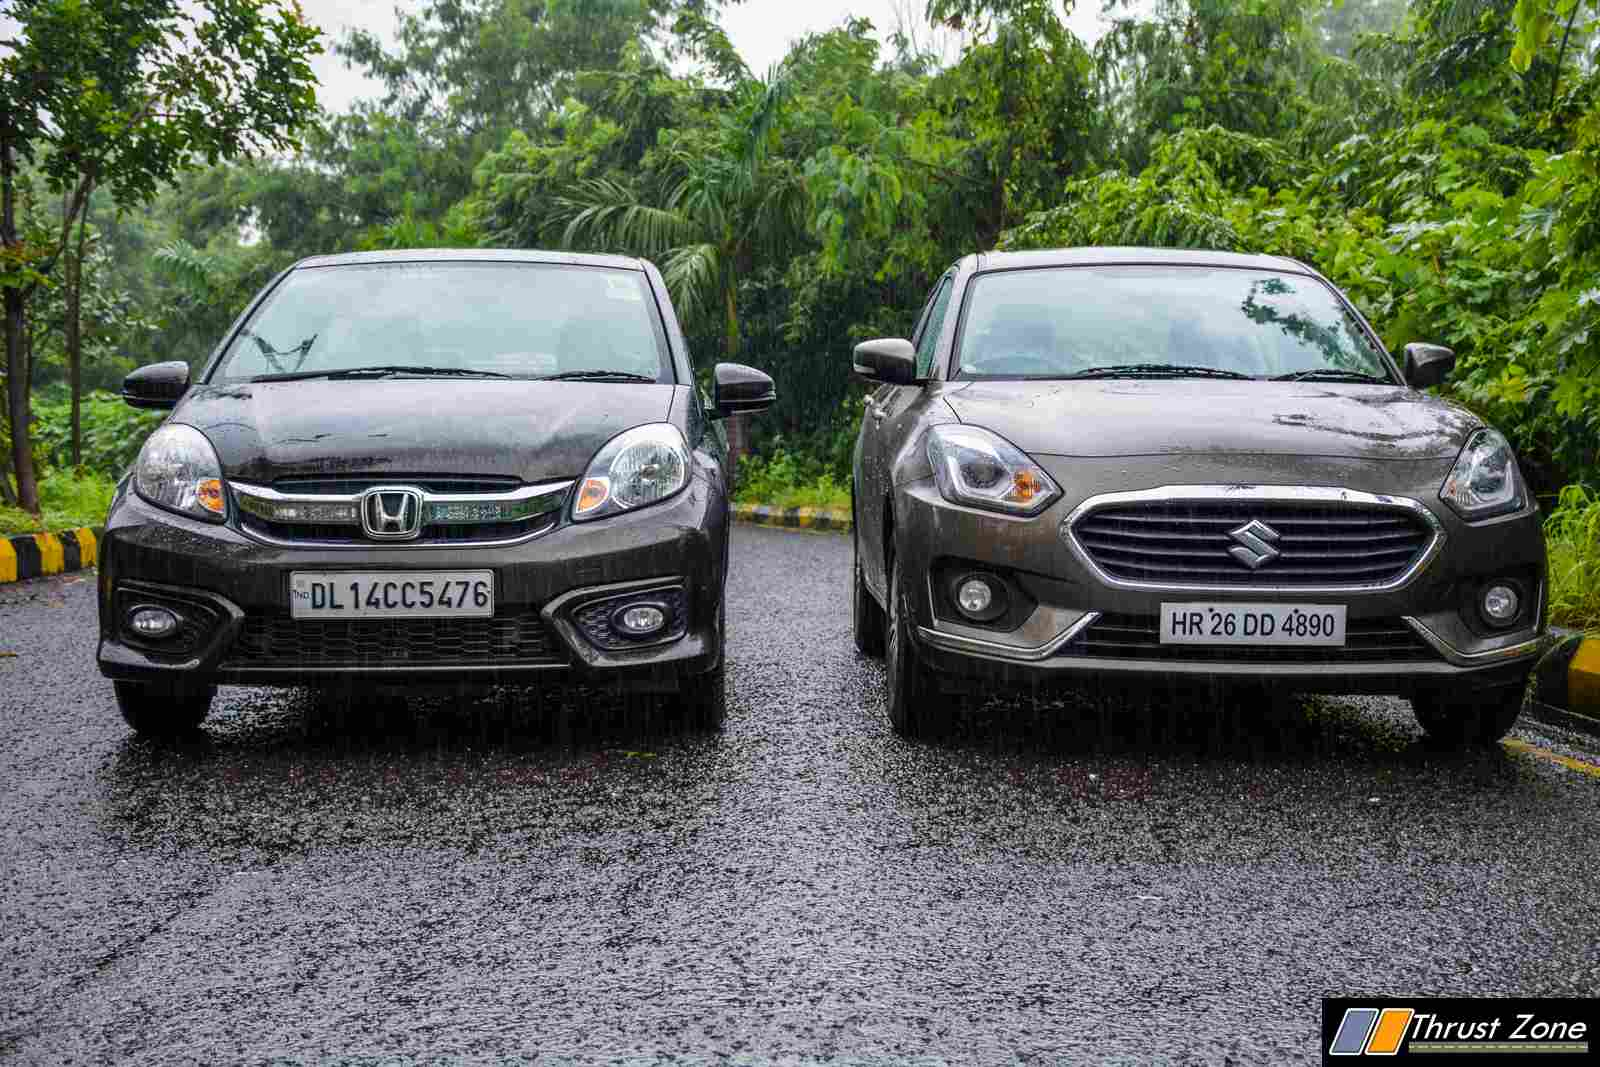 https://www.thrustzone.com/wp-content/uploads/2017/10/Honda-Amaze-vs-Maruti-Dzire-Petrol-Comparison-Review-7.jpg